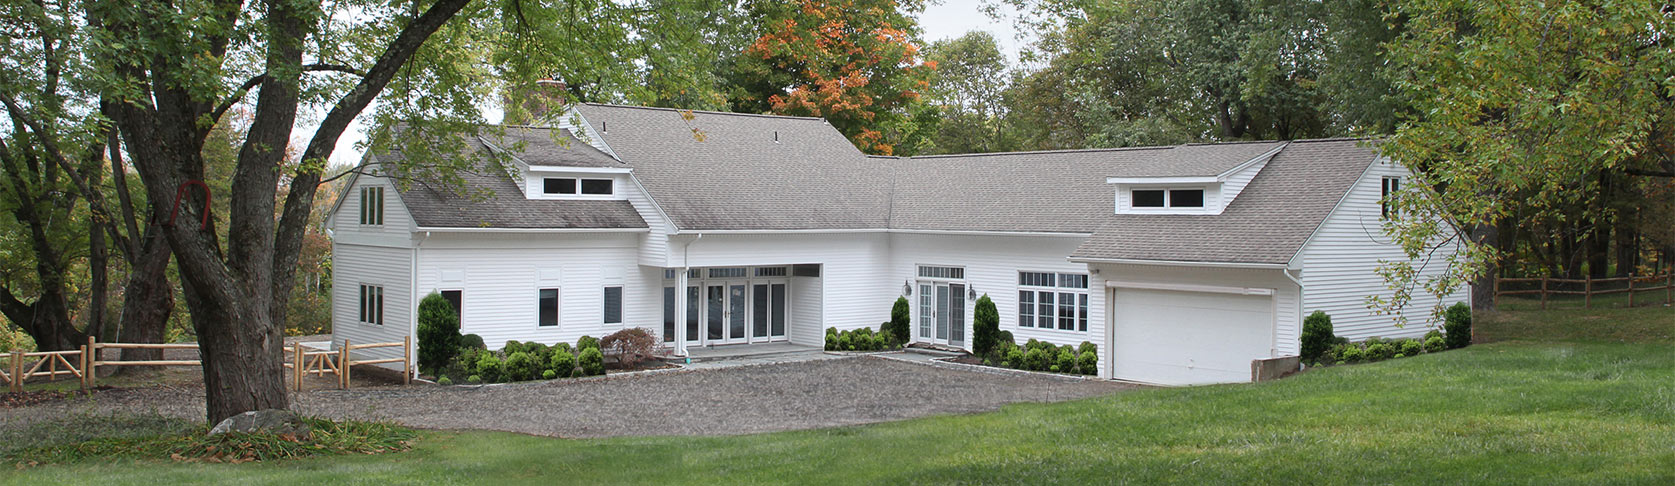 119 Littlefield Rd, New Milford (Northville), CT